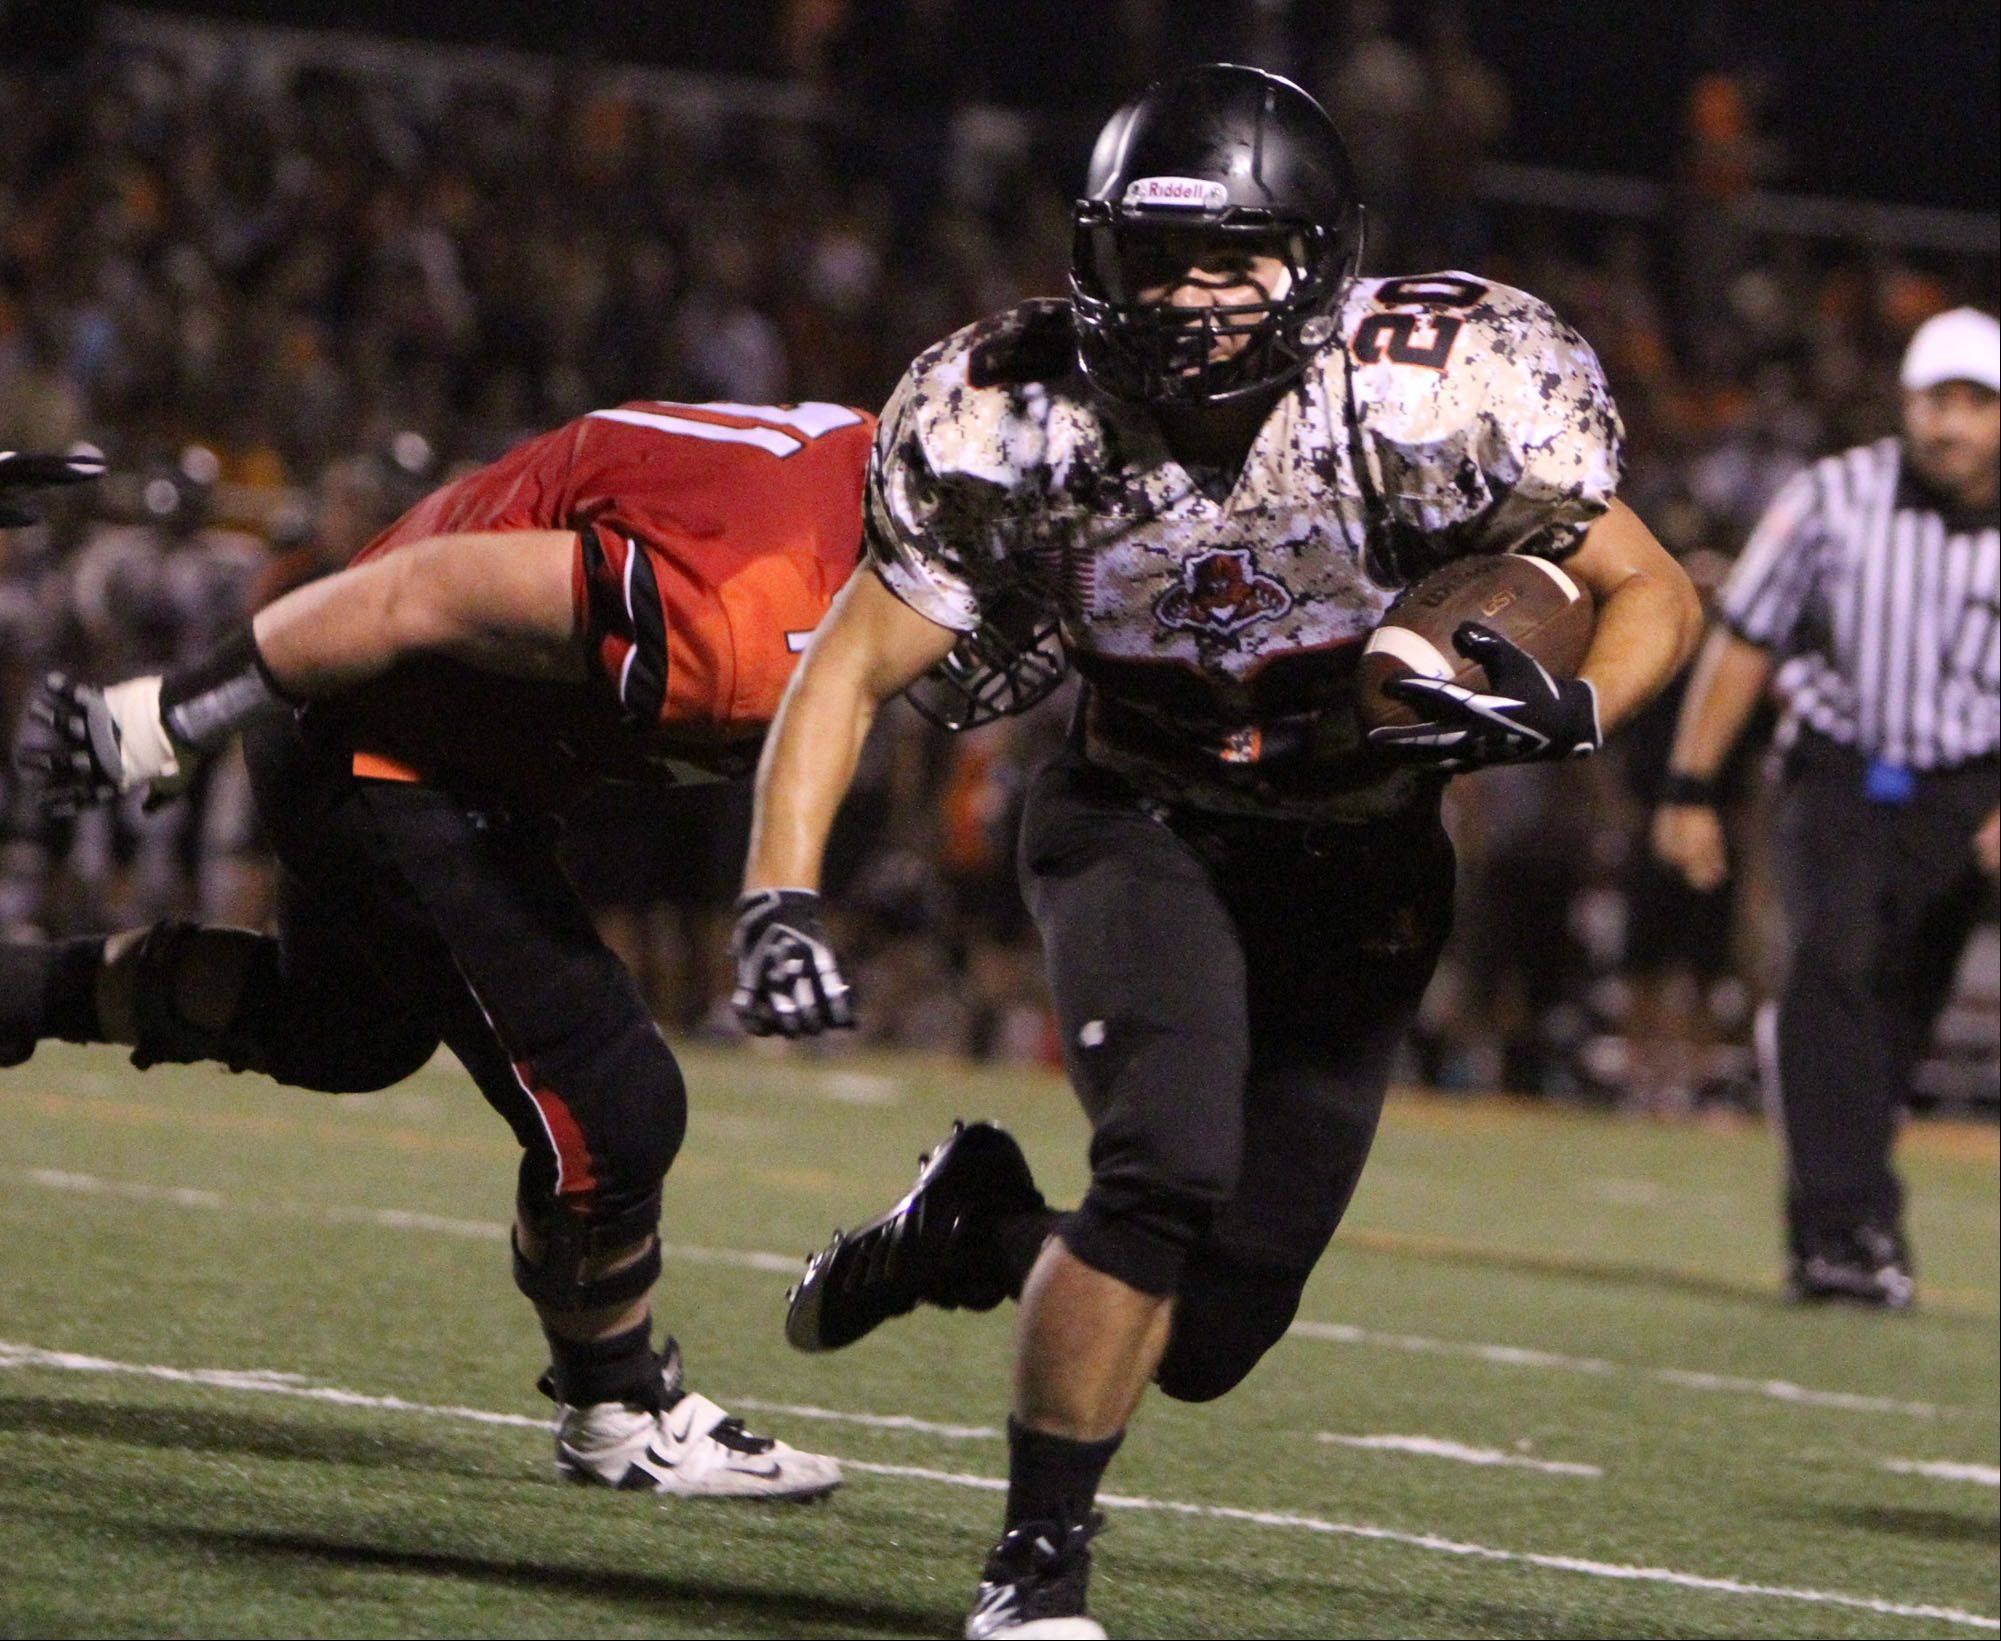 Libertyville's Brian Swift runs the ball against Barrington at Libertyville on Friday, August 26th.